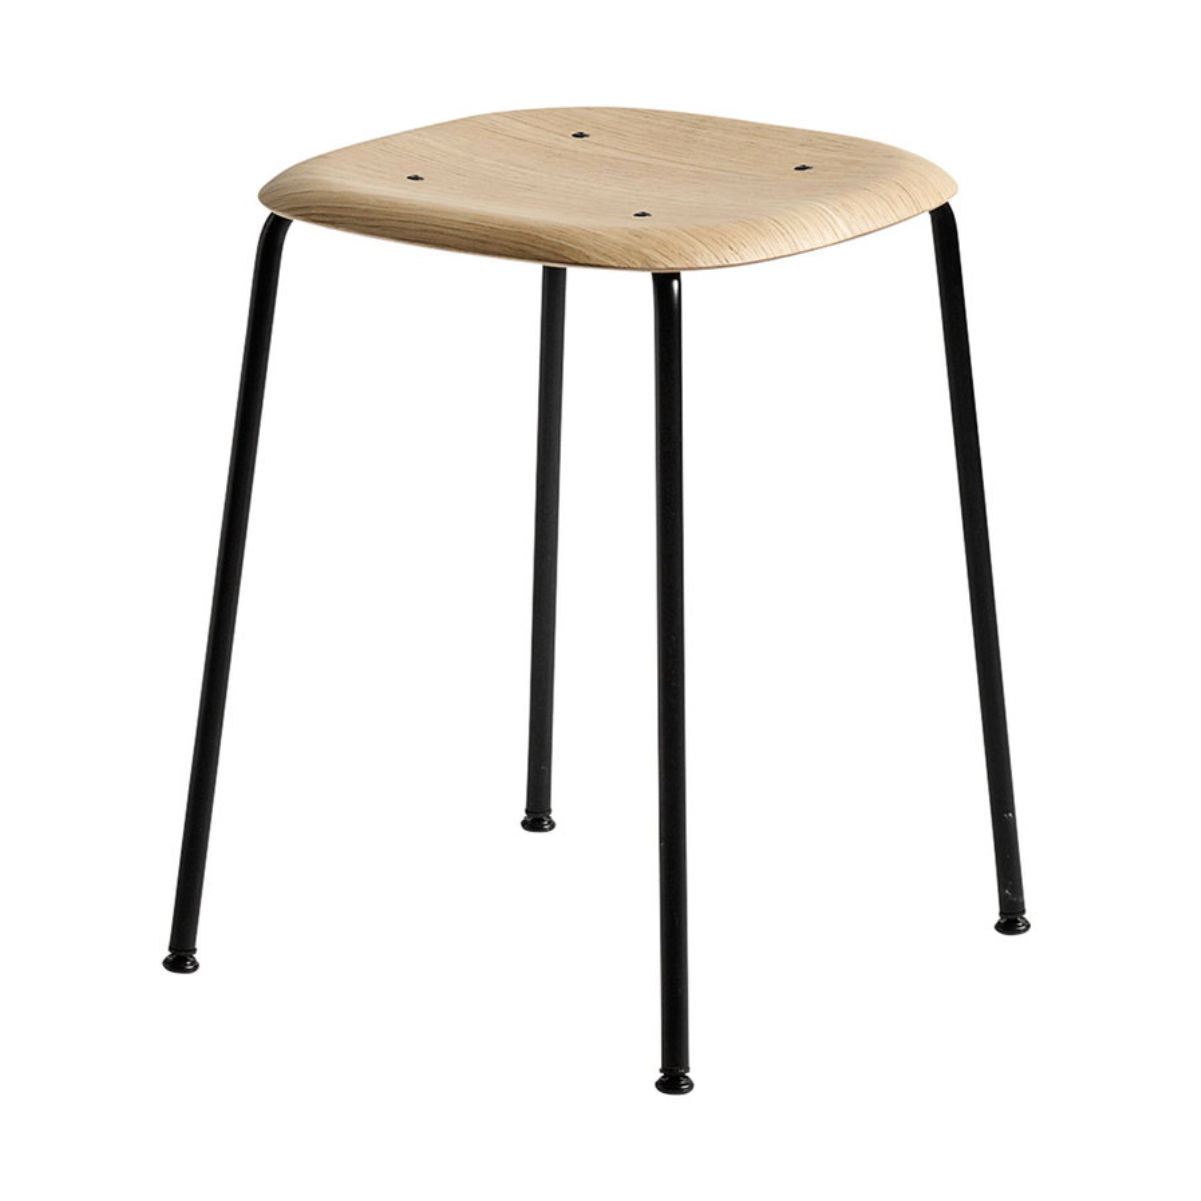 Hay Soft Edge 70 stool